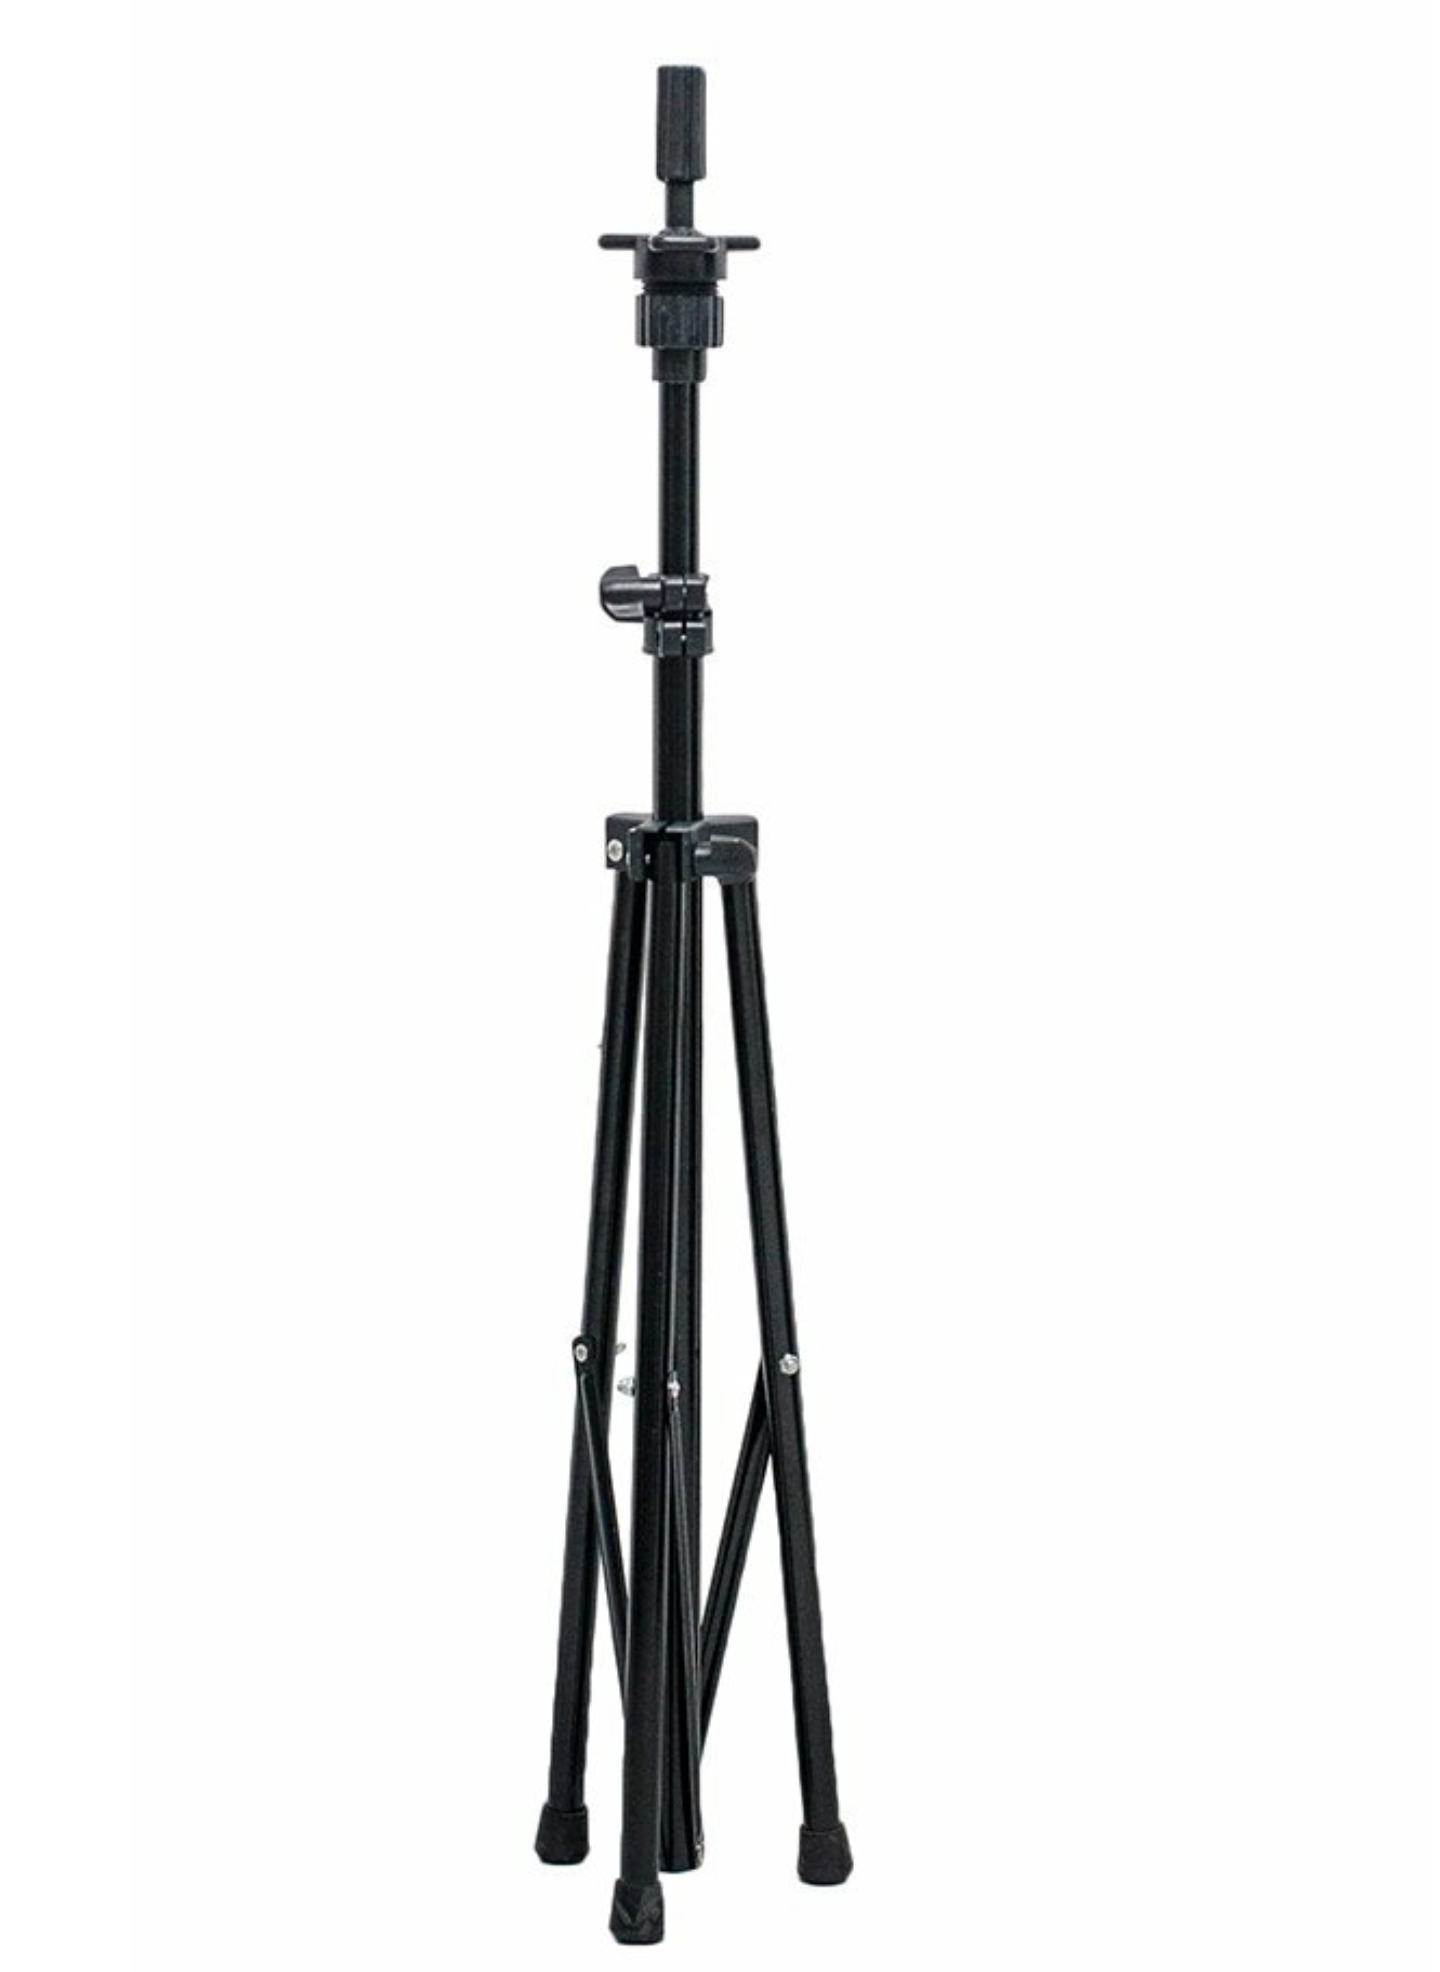 Metal Mannequin Tripod Stand Adjustable with Carry Bag